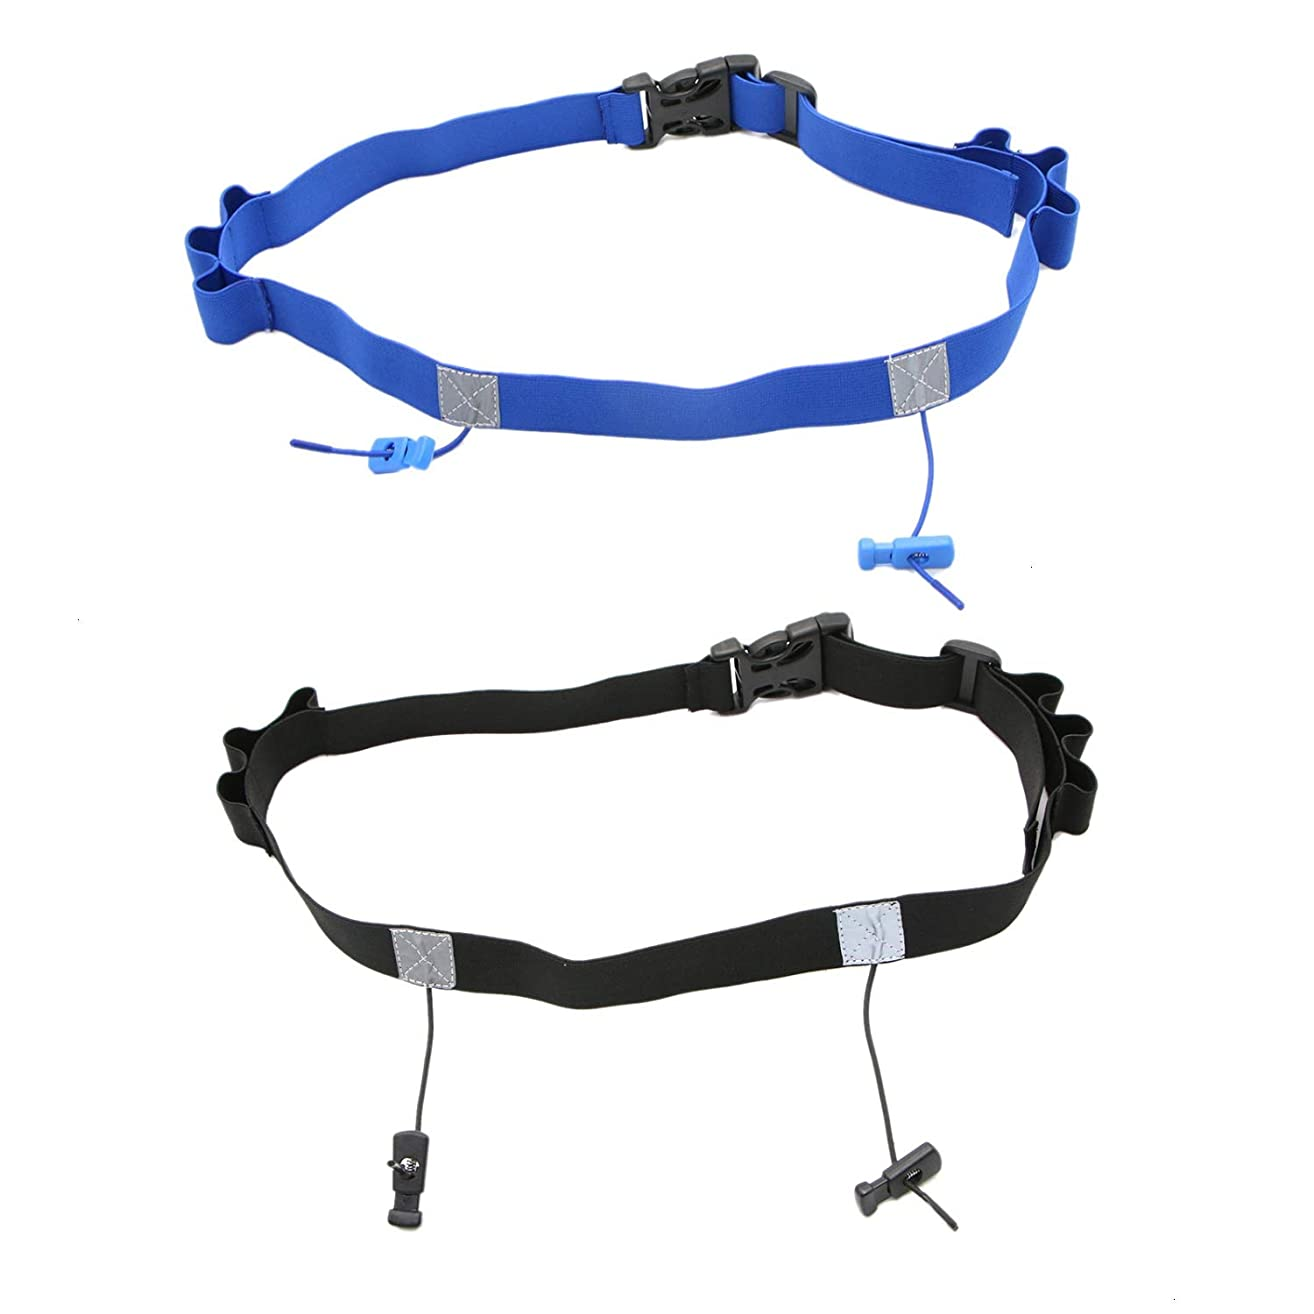 JETEHO 2 Pack Race Number Belt with 6 Gel Loops for Running, Cycling, Marathon, Triathlon